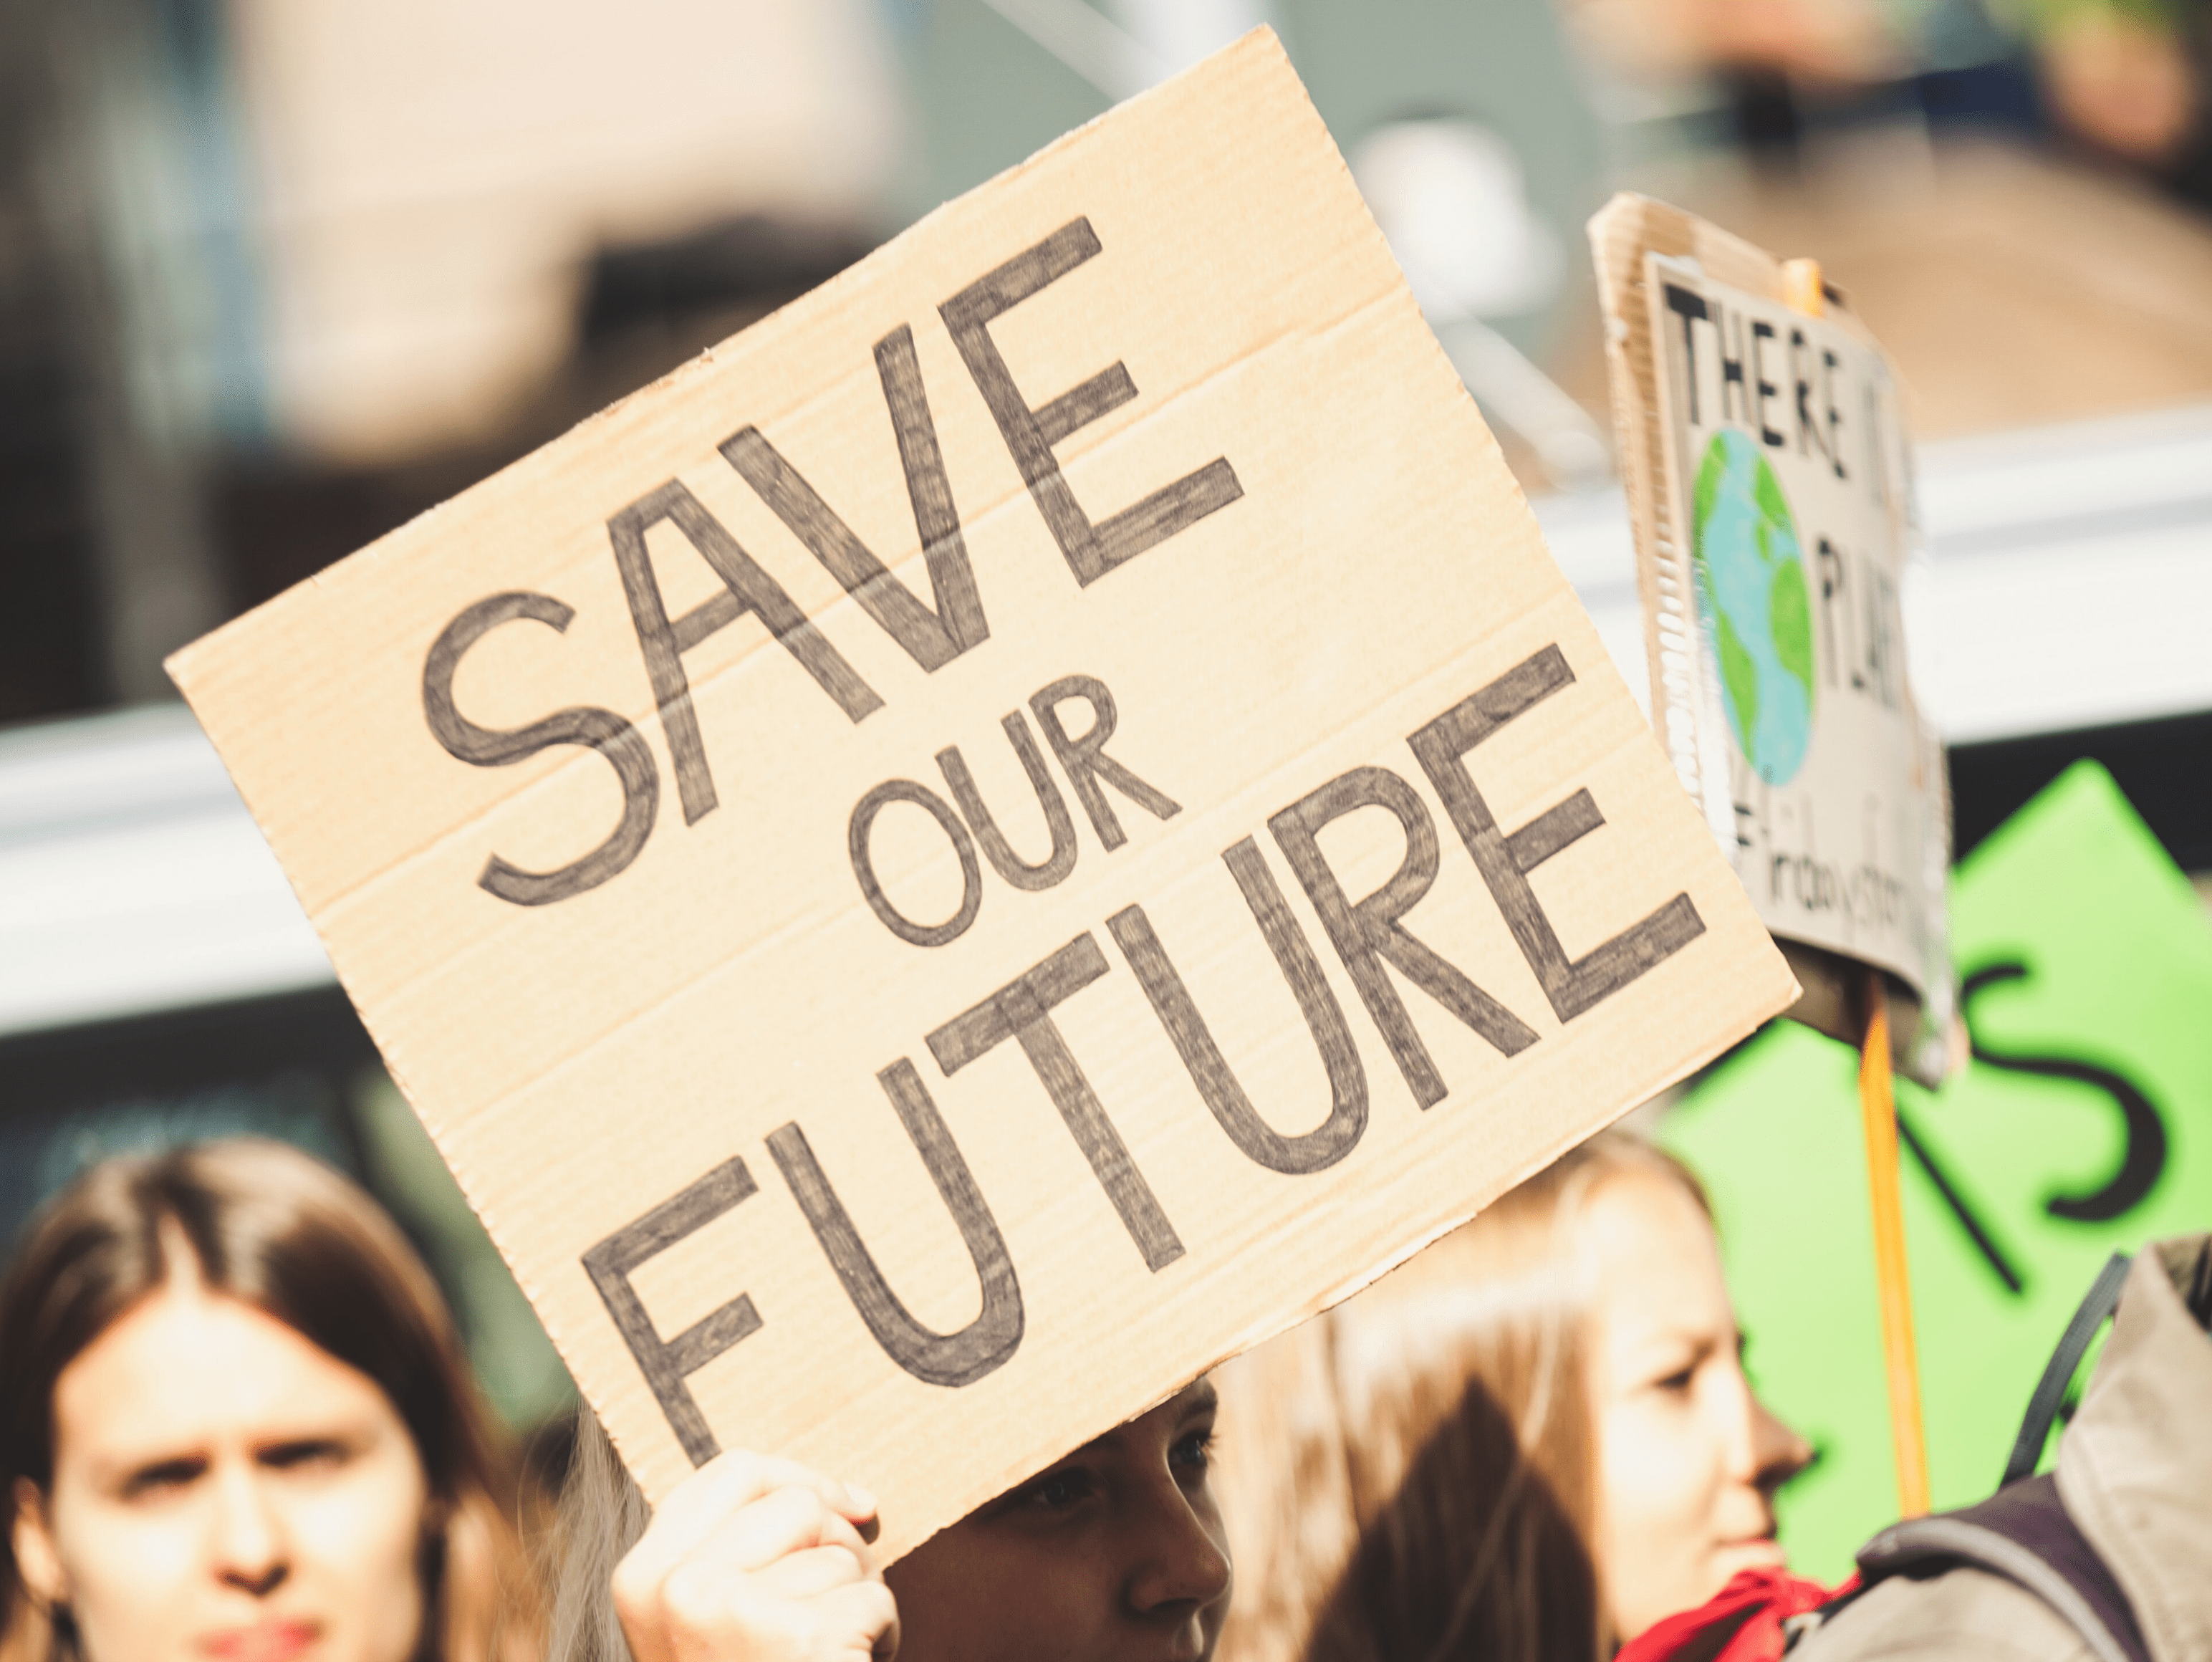 Save The Future Protest